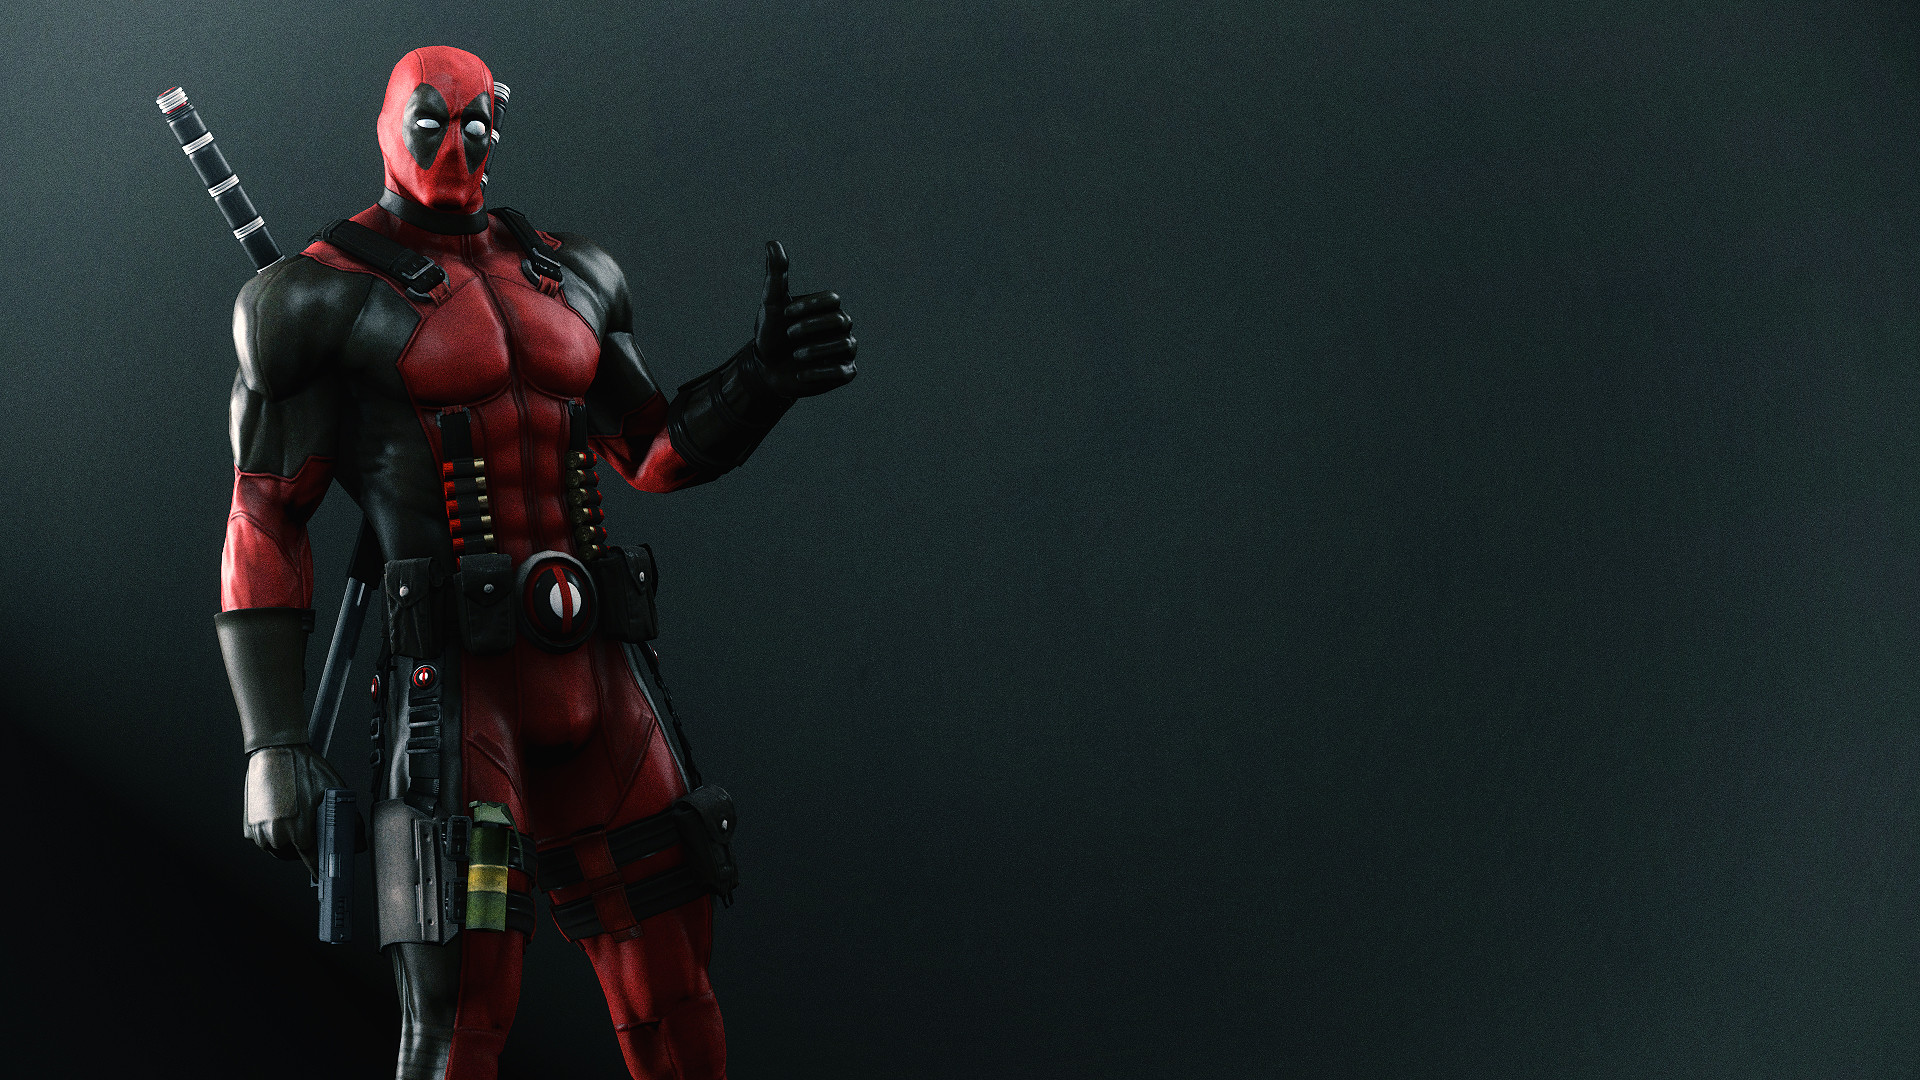 1920x1080 Deadpool Wallpaper by AngryRabbitGmoD.deviantart.com on @deviantART